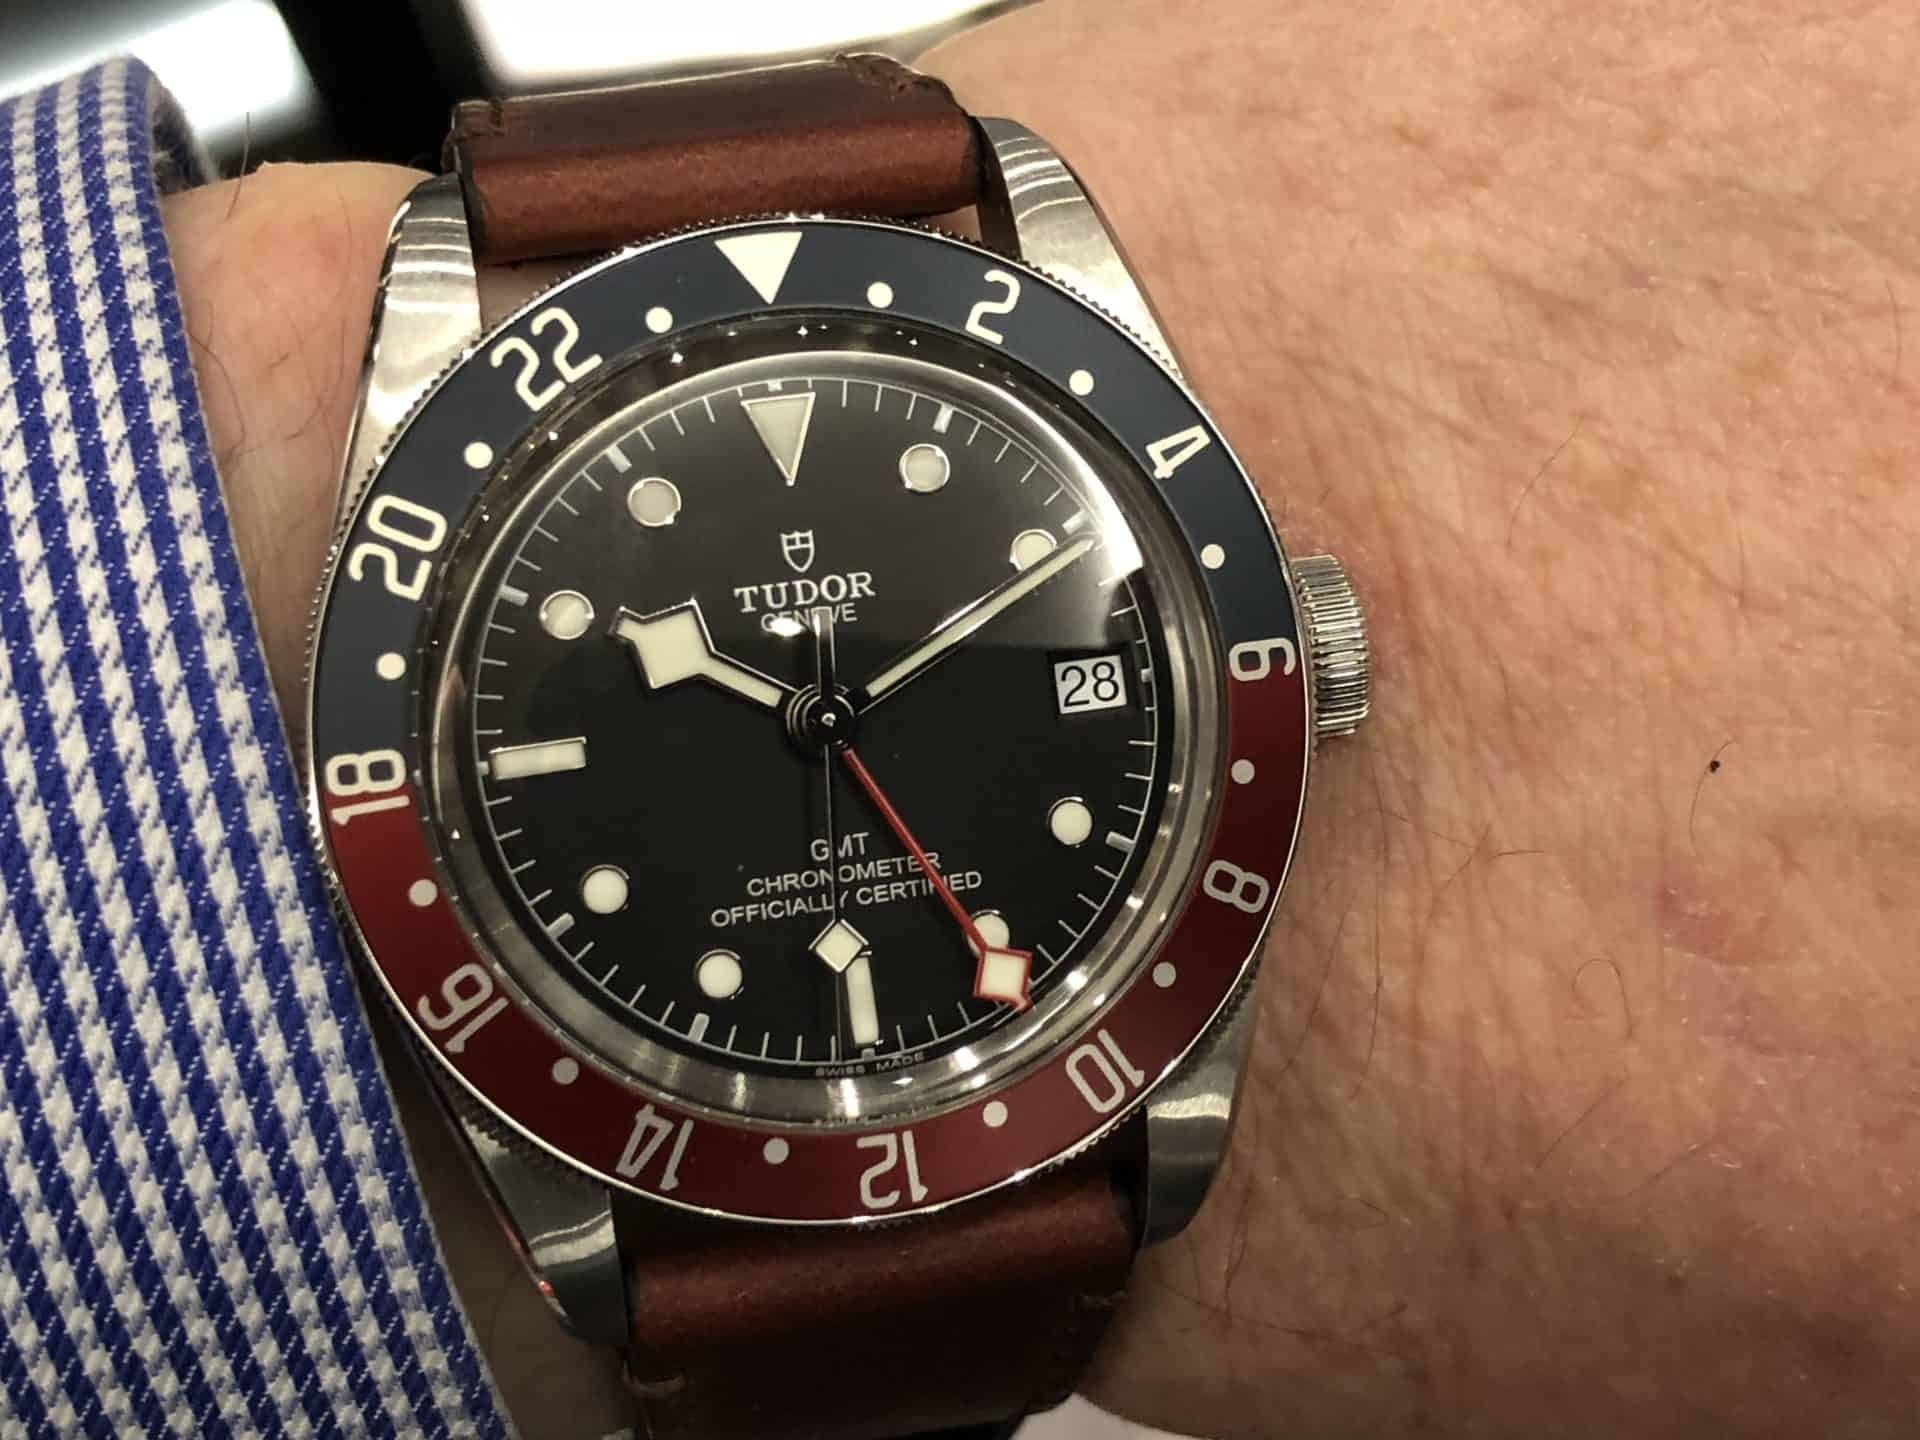 Pepsi Tudor Black Bay GMT